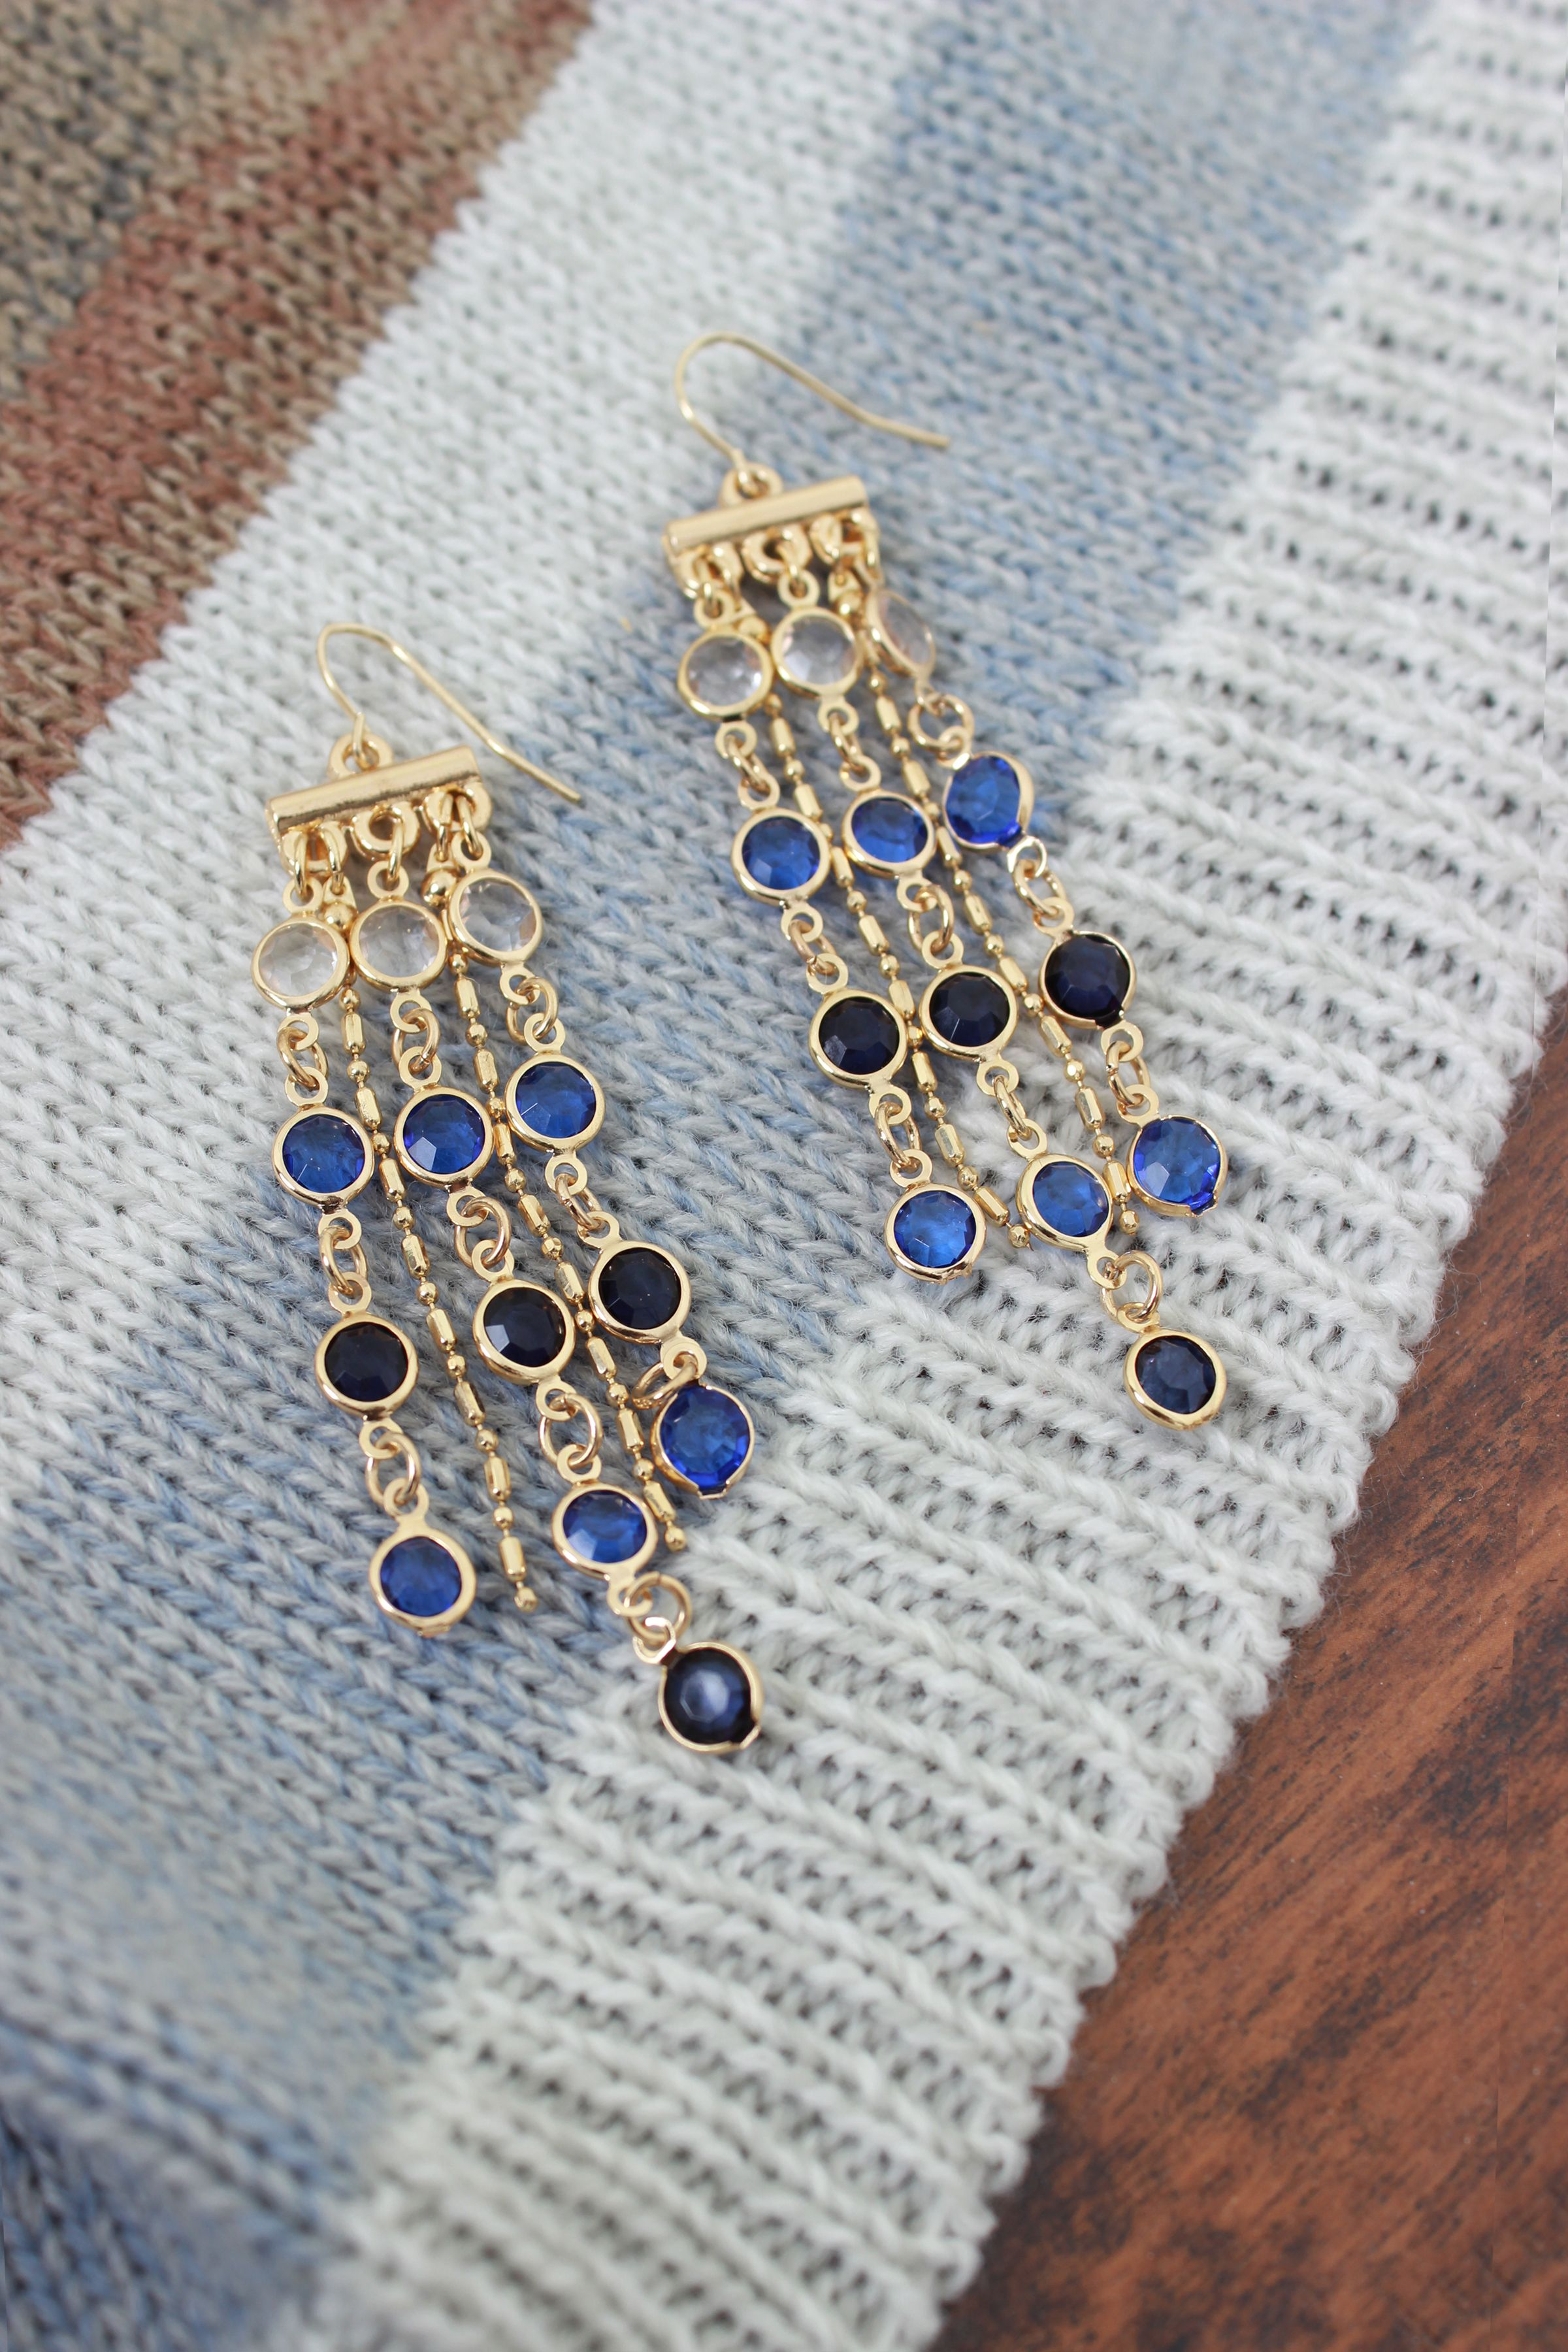 We love these dangling statement earrings in Indigo by Simply Noelle